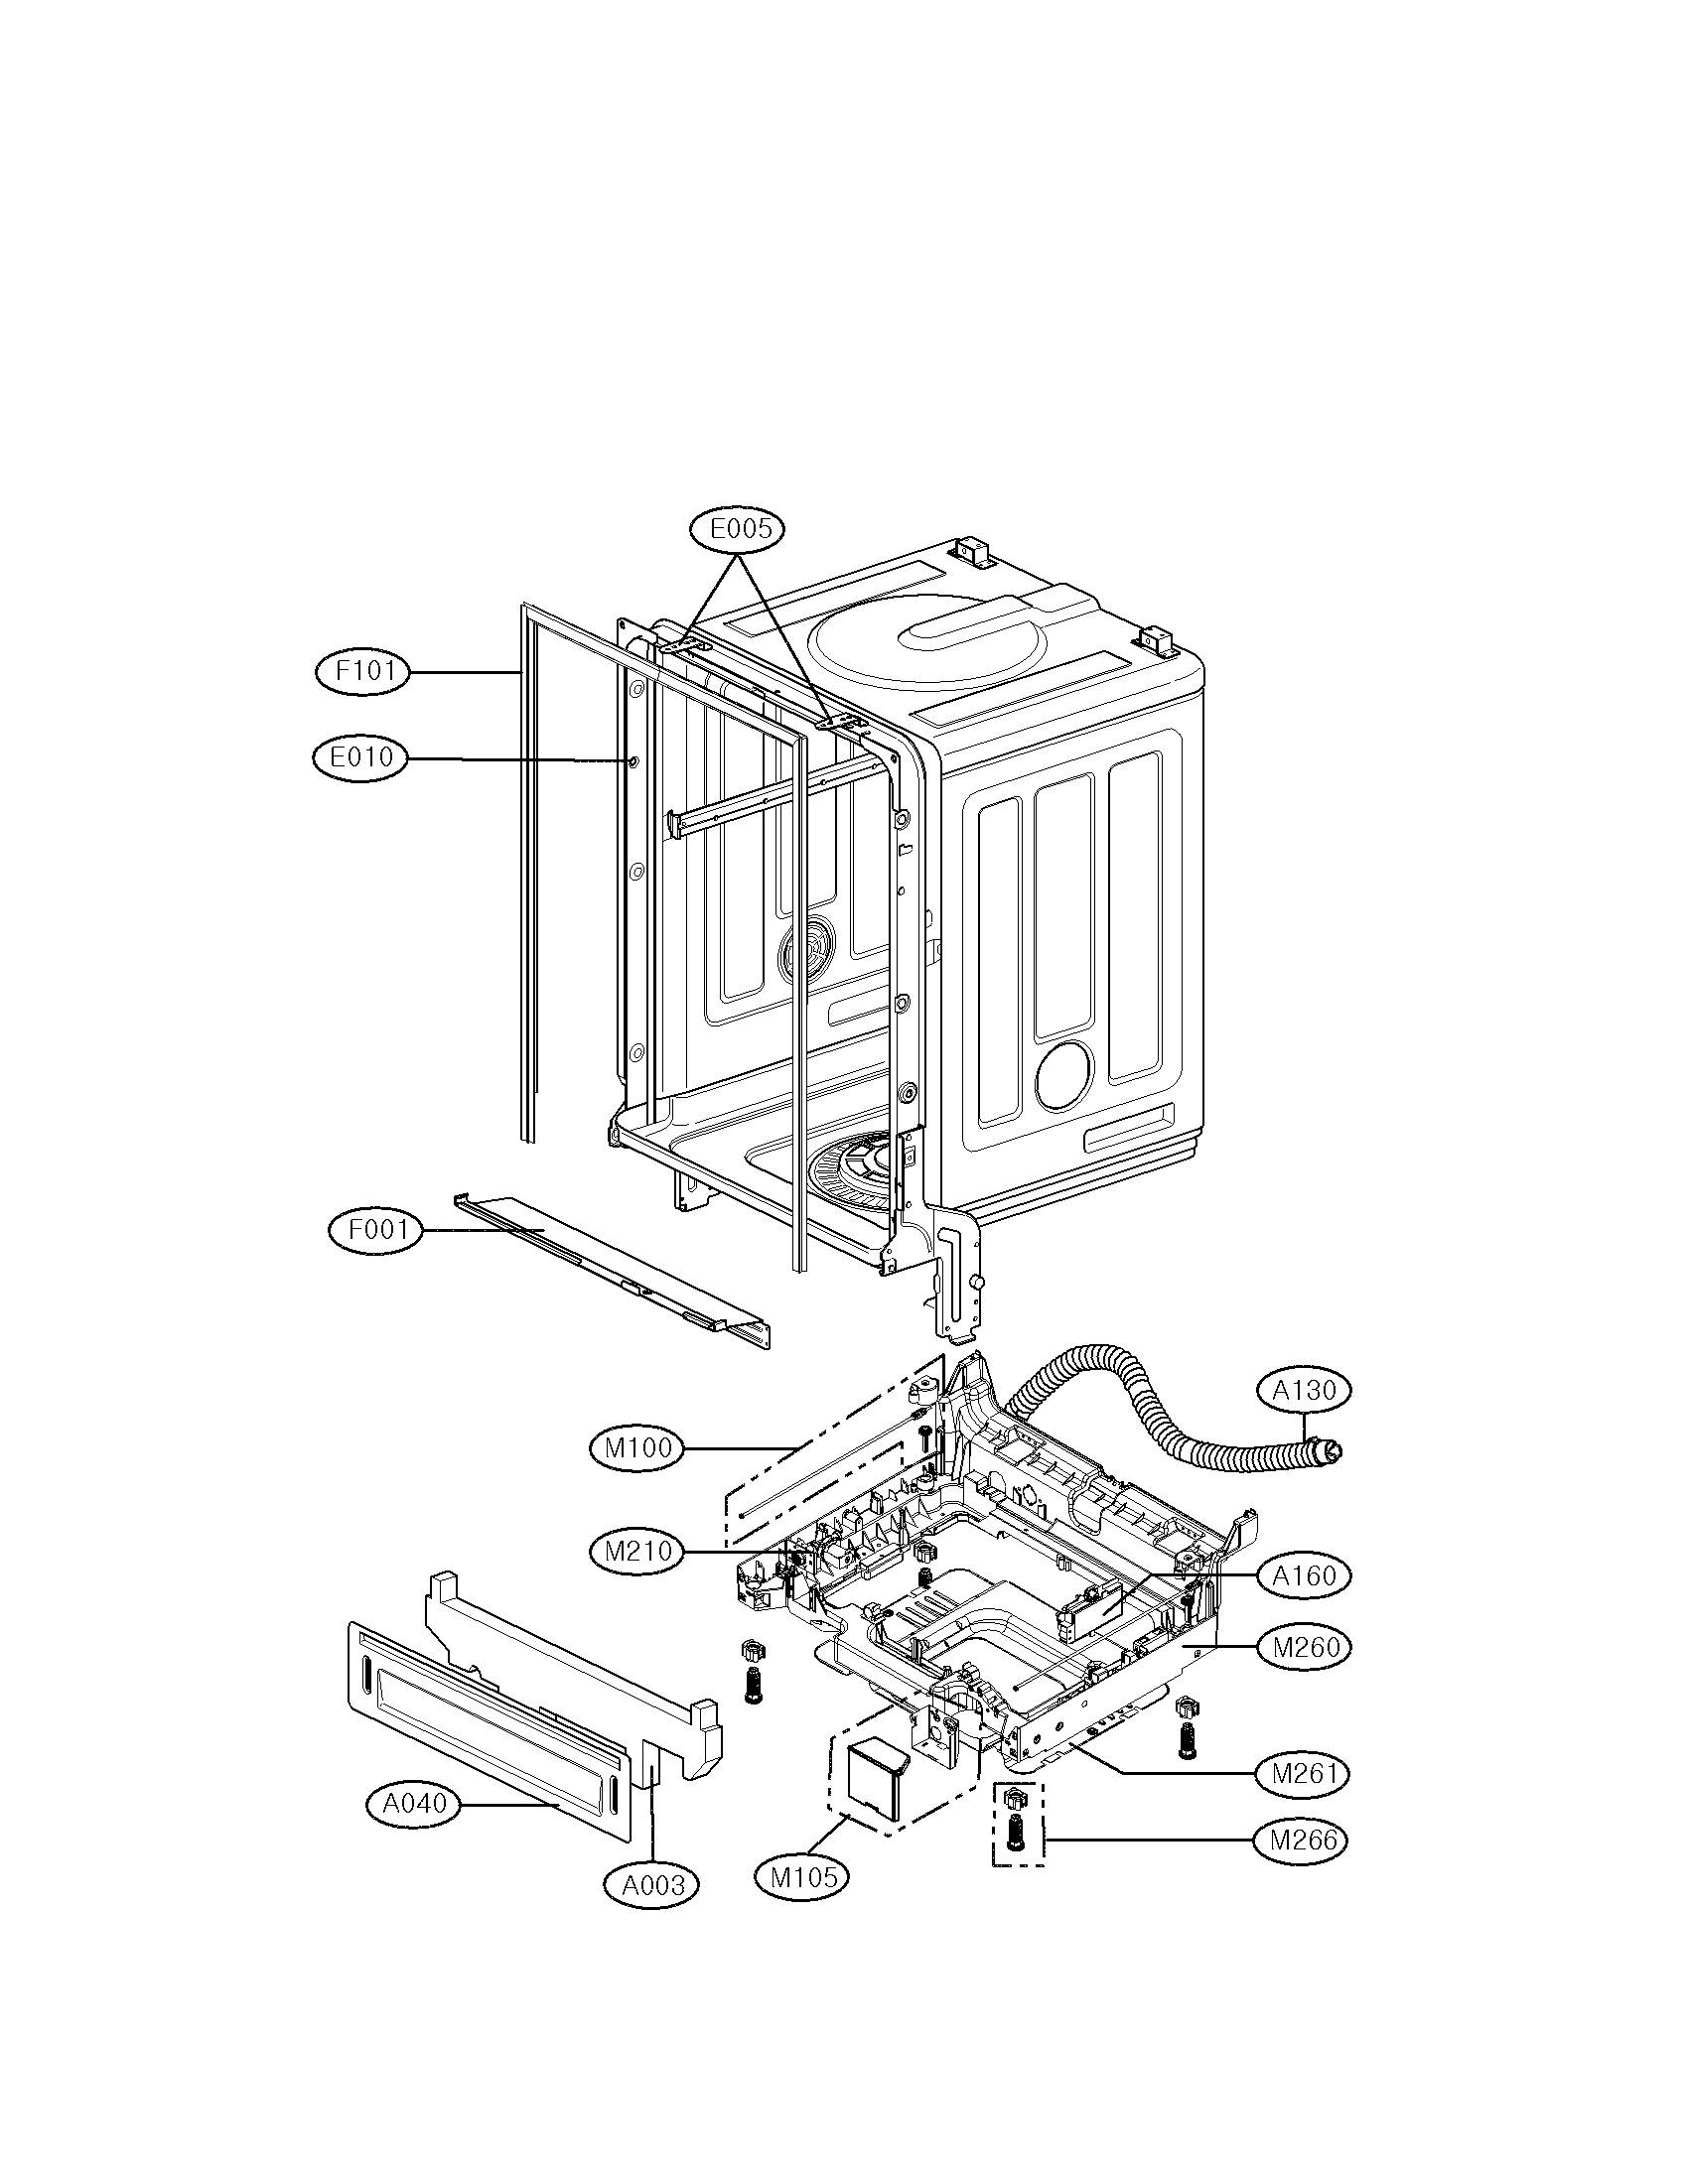 Lg Dishwasher Parts Near Me